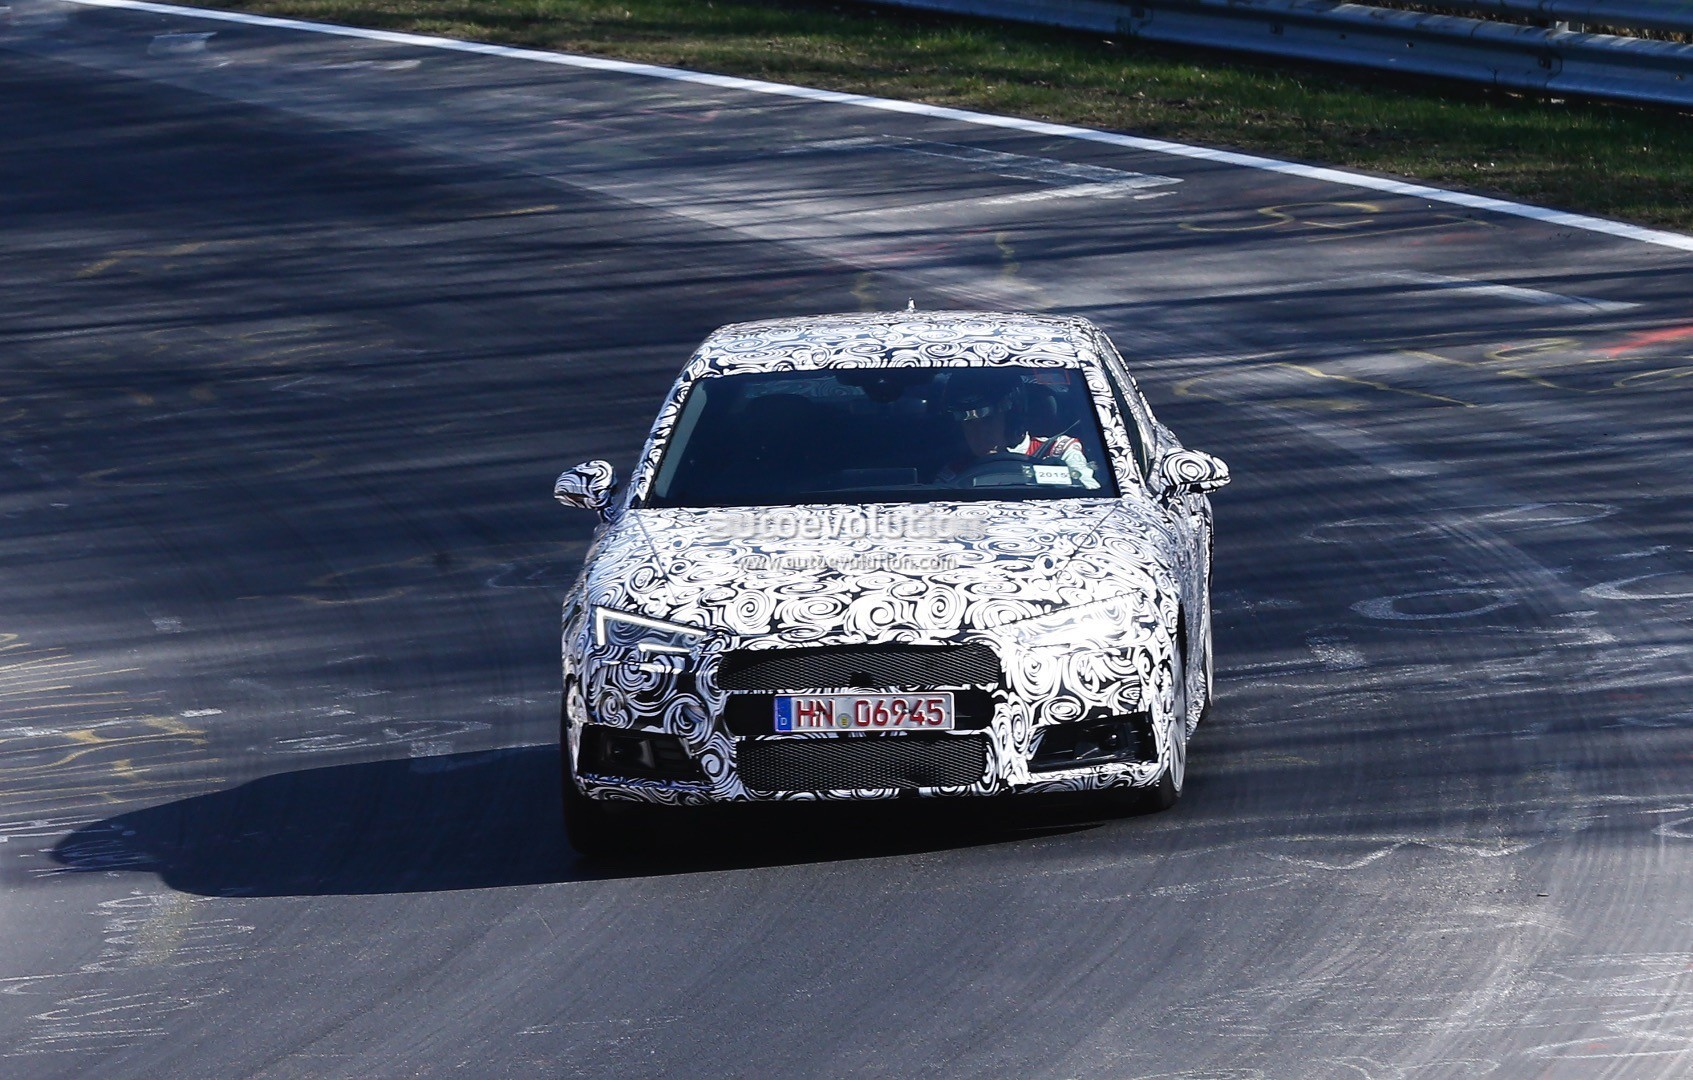 2017 audi s4 avant and sedan spotted testing on the nurburgring for the first time autoevolution